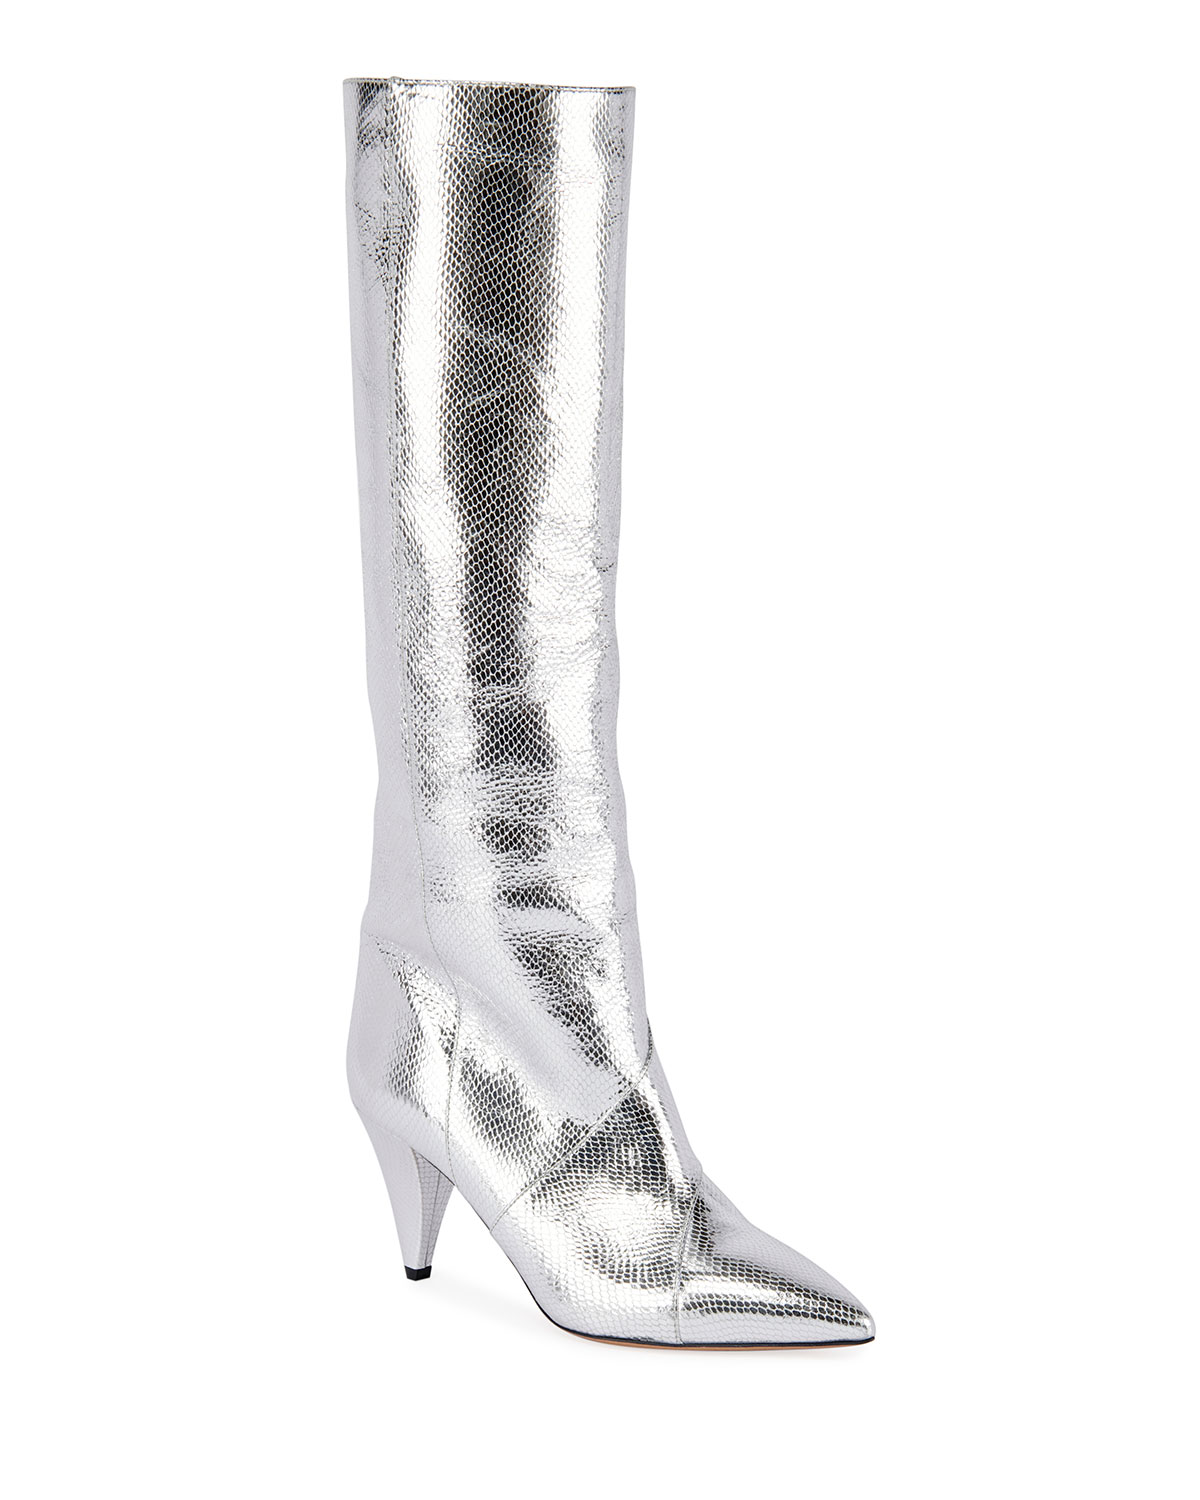 Isabel Marant Boots LAOMI METALLIC LEATHER MID BOOTS